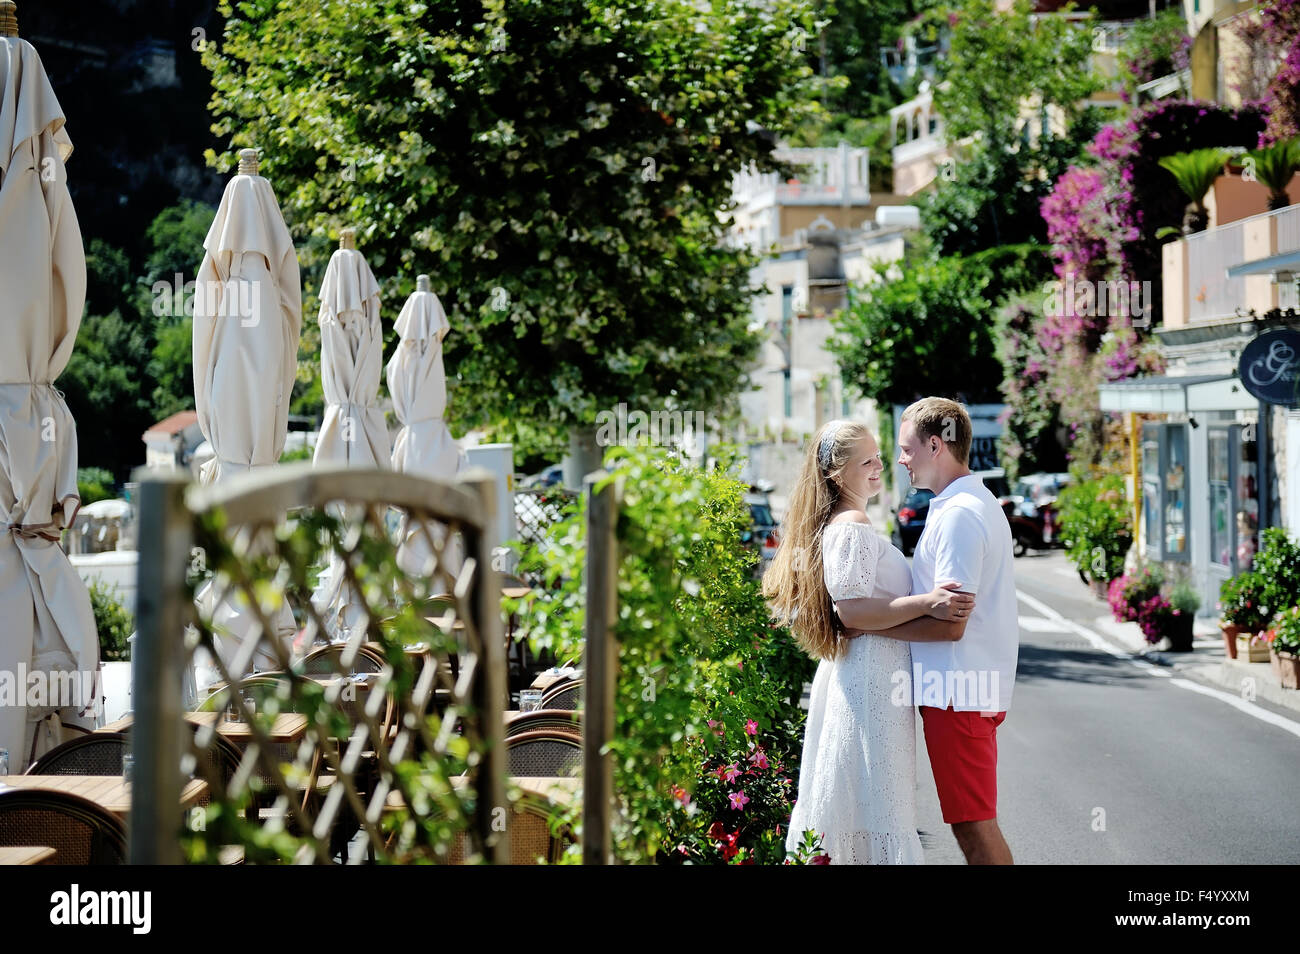 young couple tenderly embraced in a sunny day, Amalfi coast, Italy - Stock Image